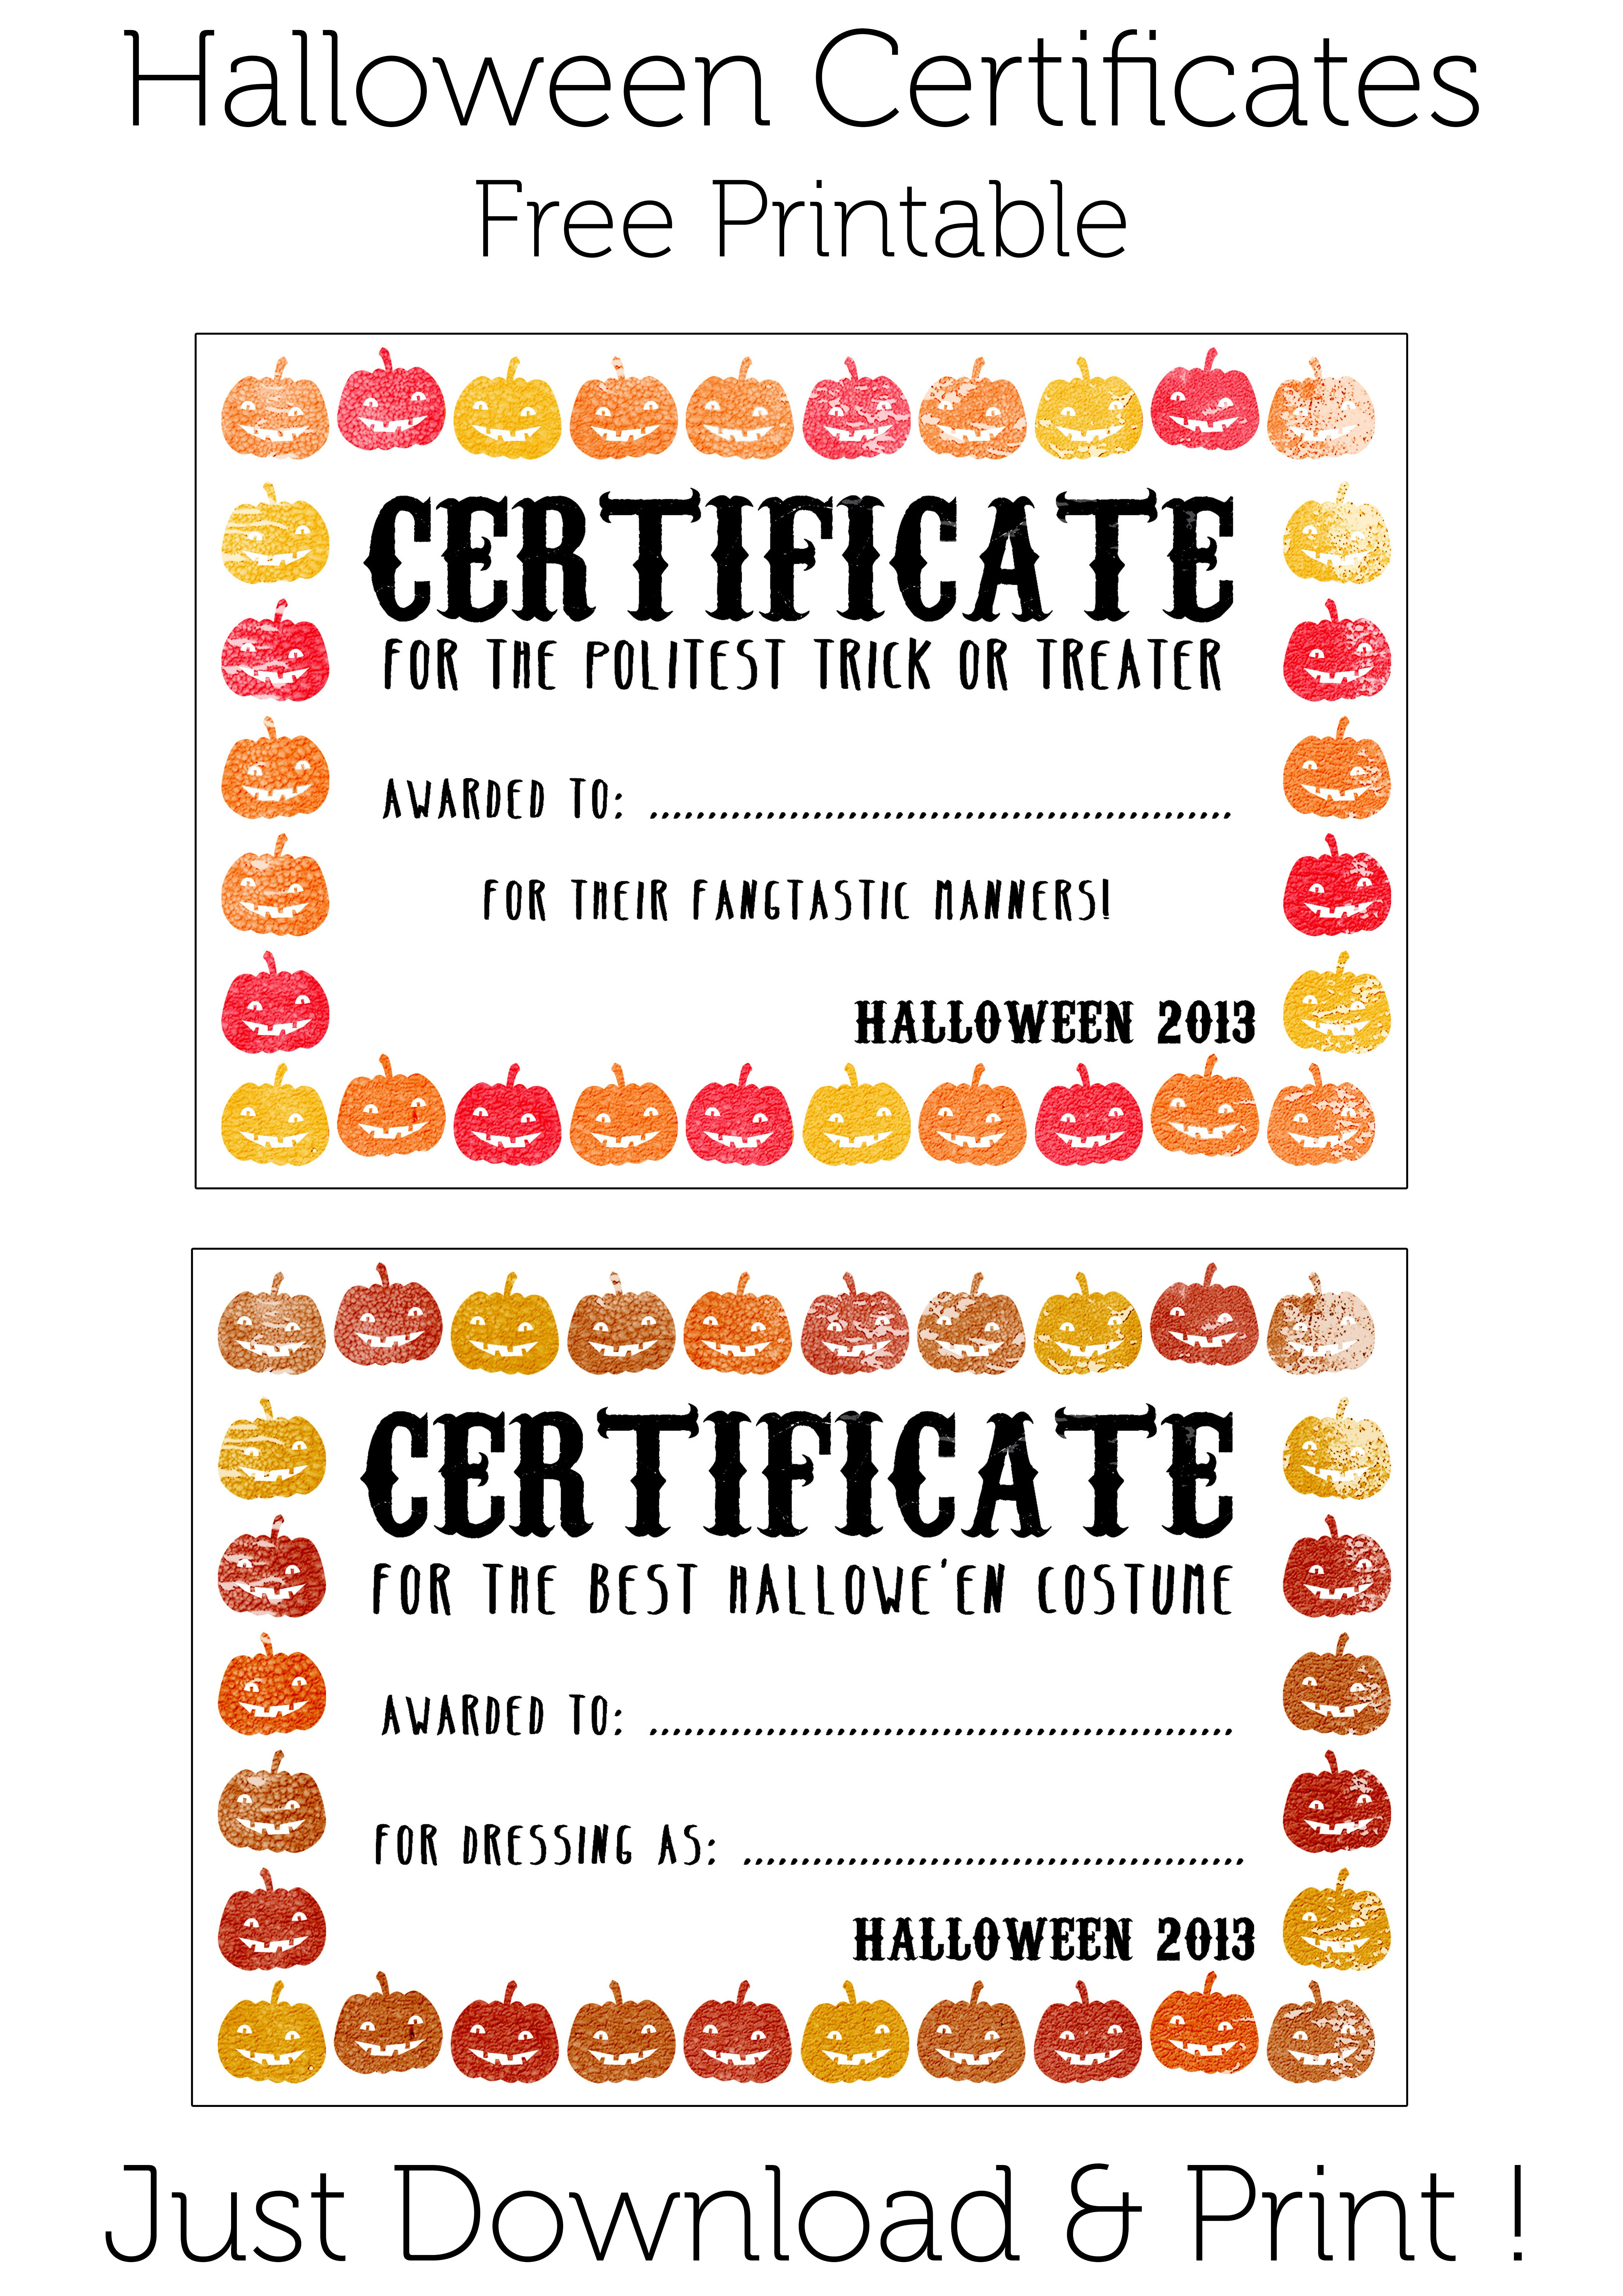 Halloween Certificates ! Give Them Out To Trick O' Treaters As Well - Best Costume Certificate Printable Free